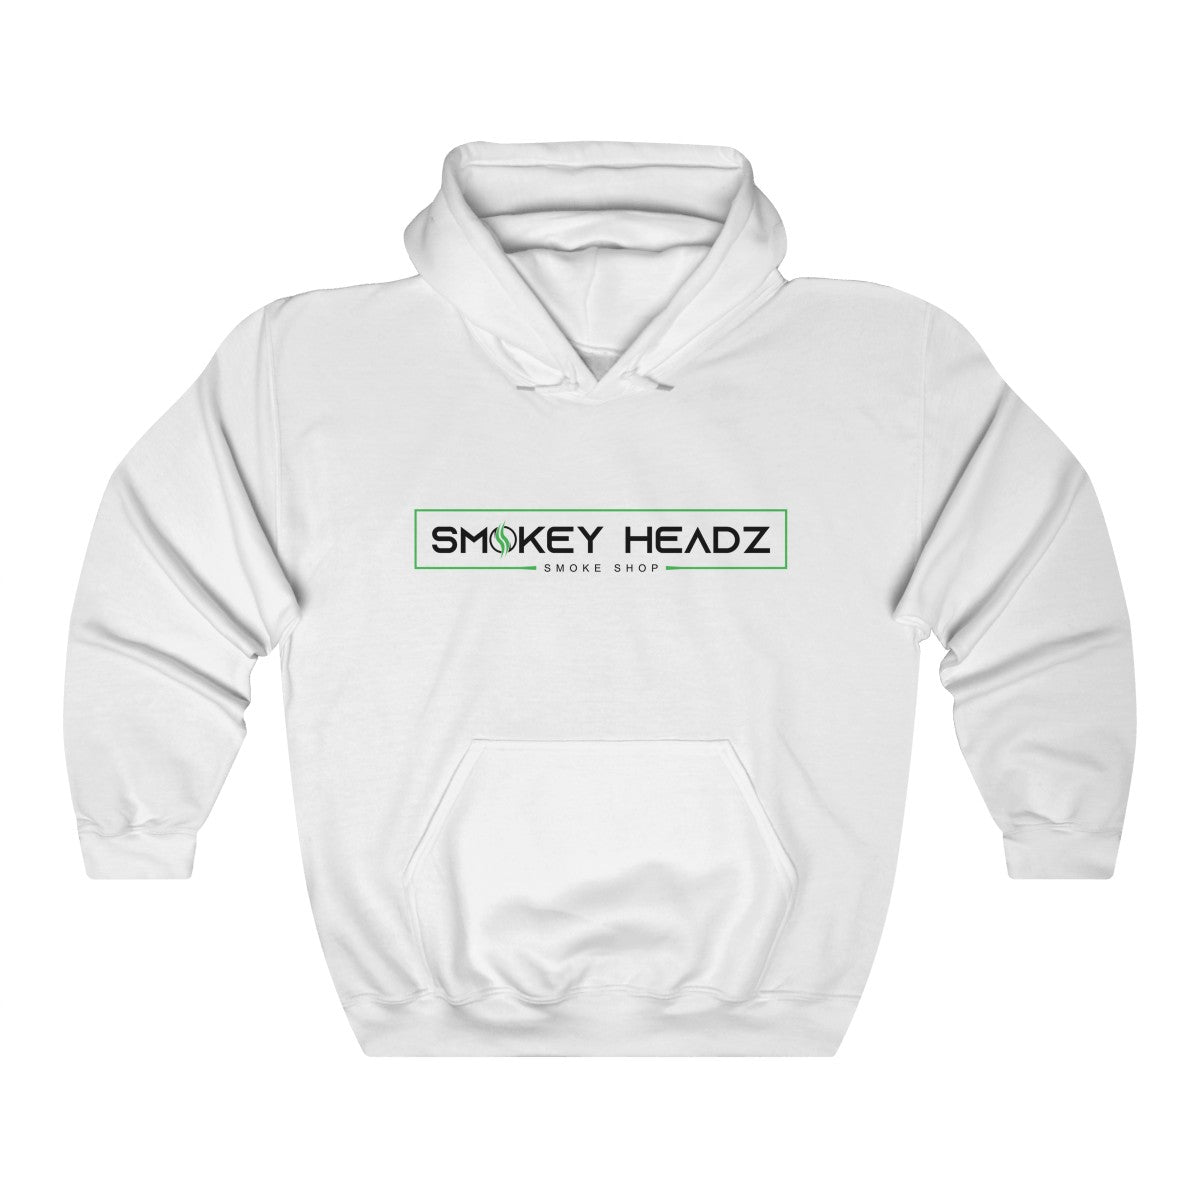 [Affordable Smoking Supplies & Products Online] - Smokey Headz